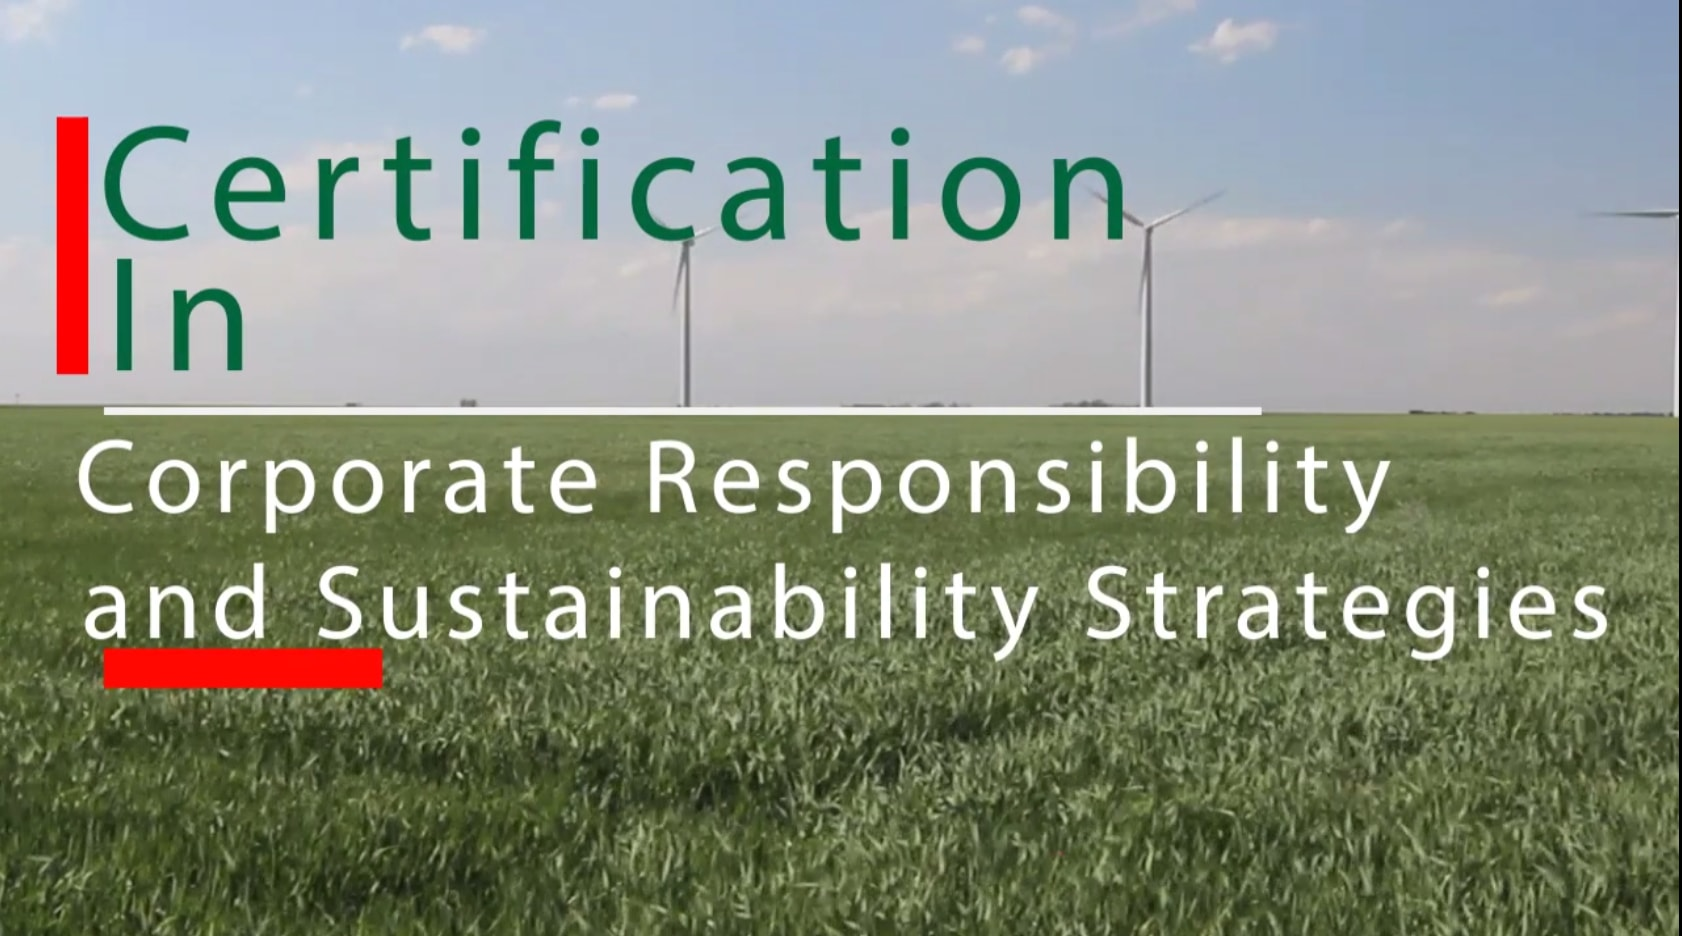 Certification in Corporate Responsibility & Sustainability Strategies CCRSS